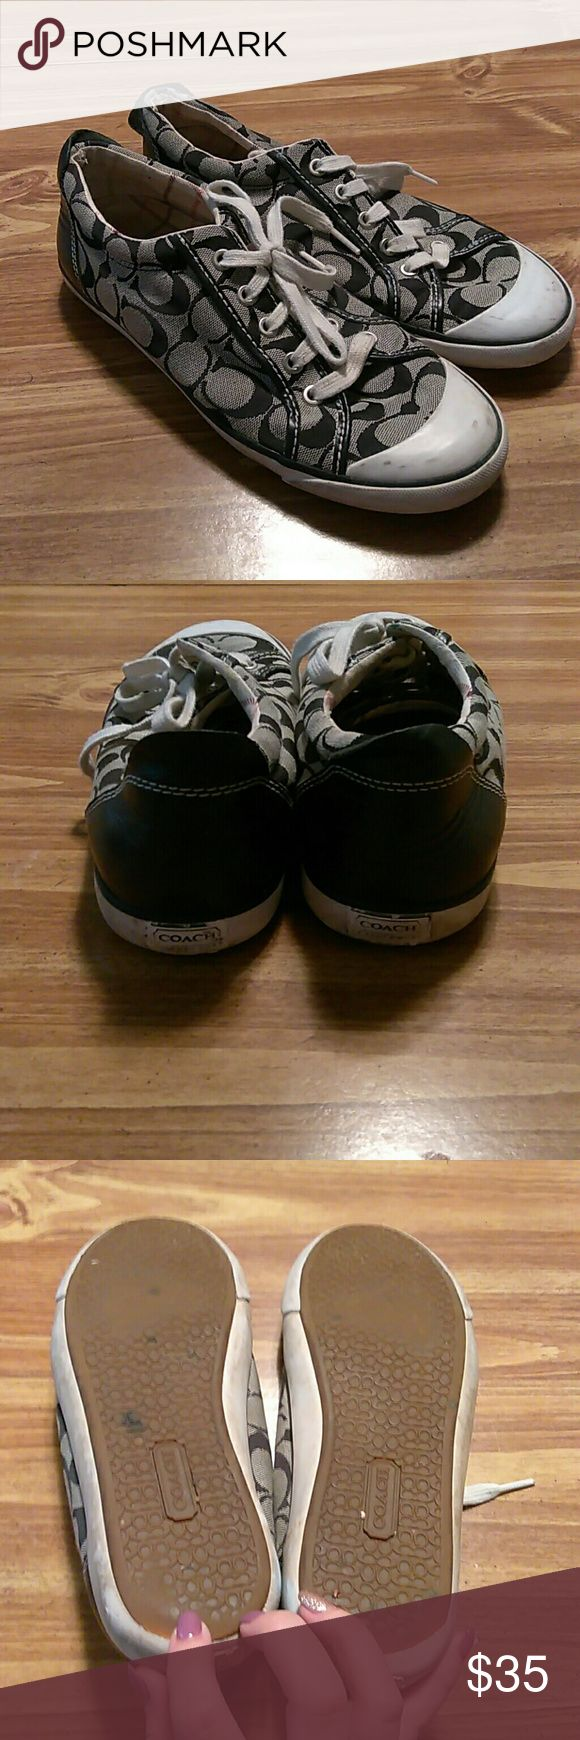 Coach tennis shoes Used Coach Shoes Athletic Shoes